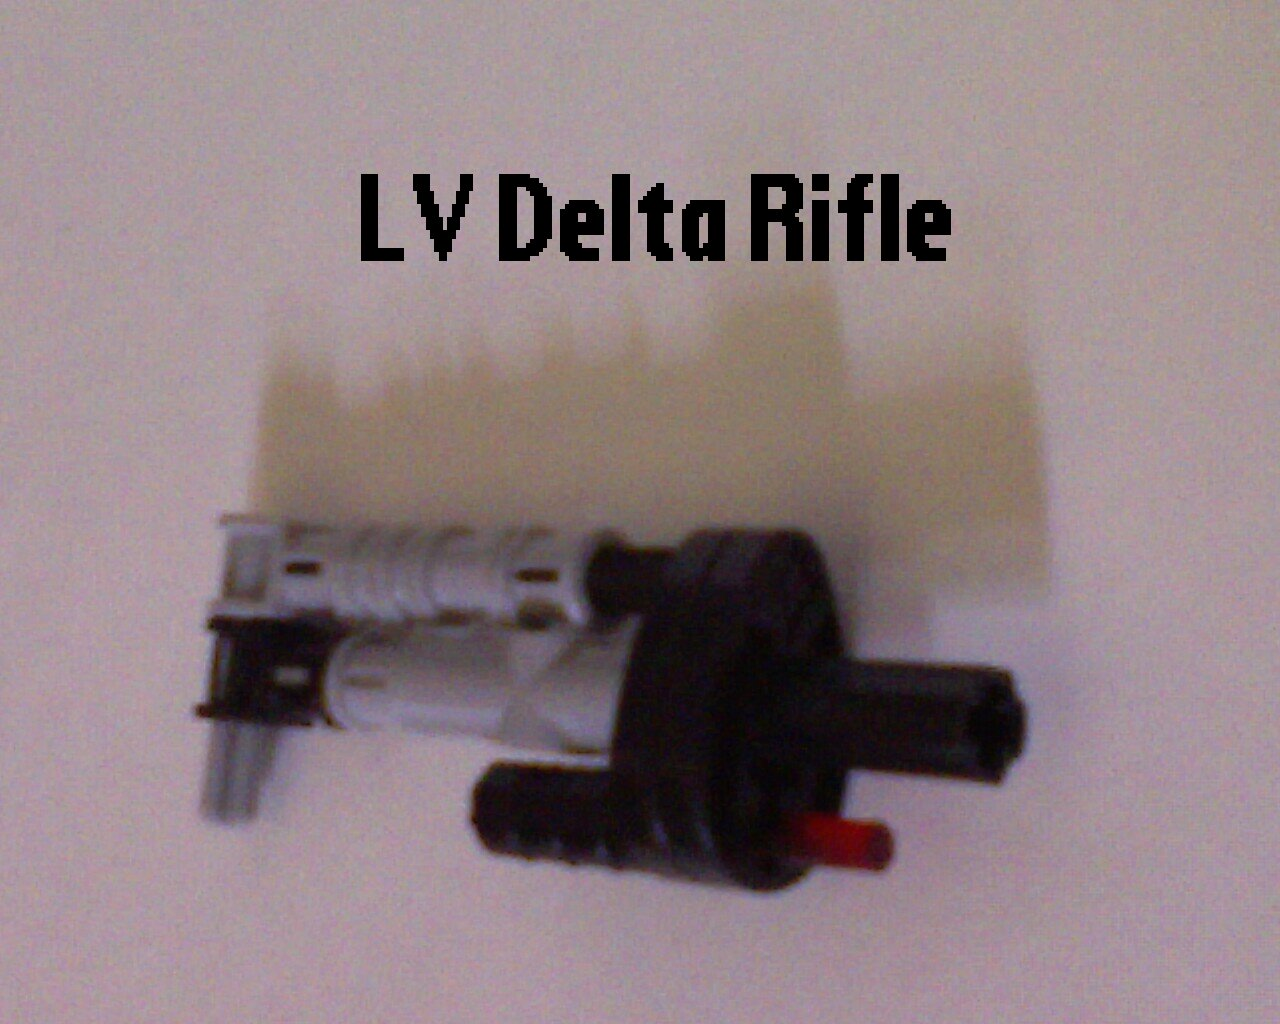 lv_delta_rifle.jpg